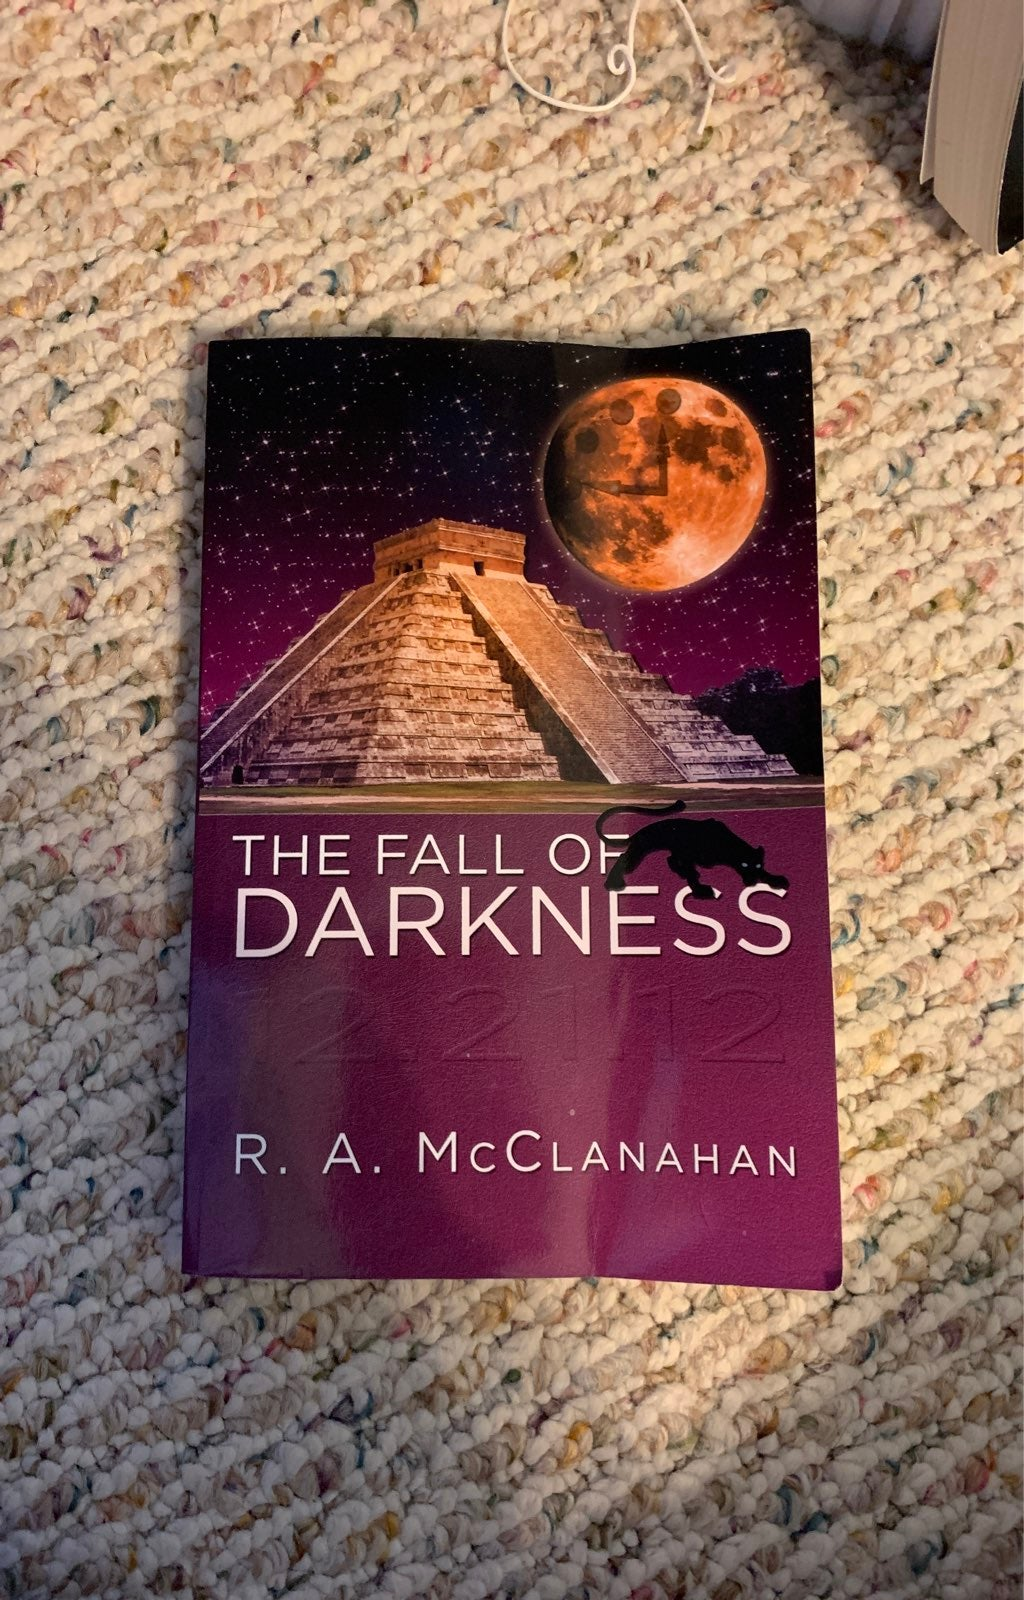 The Fall of Darkness by R.A. McClanahan